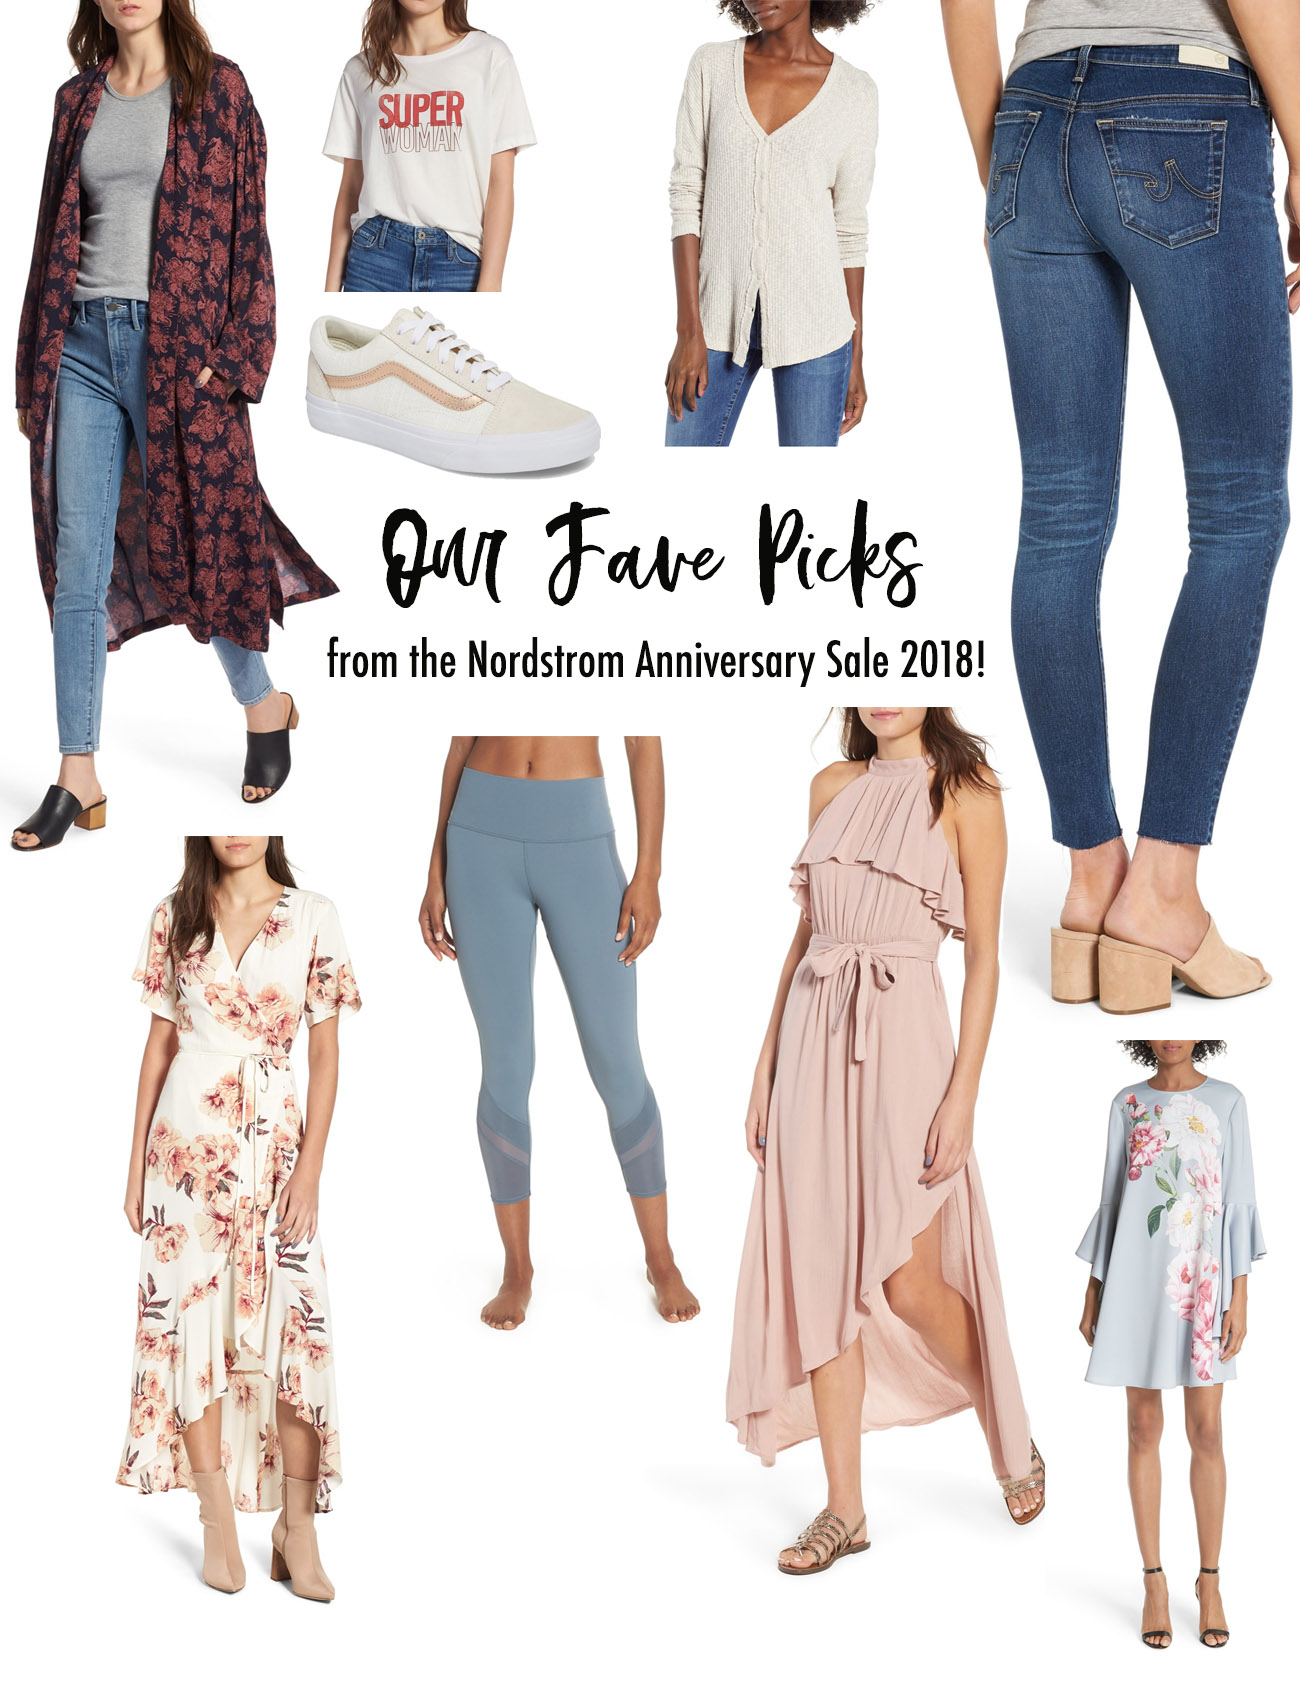 nordstrom sale 2018 fave picks